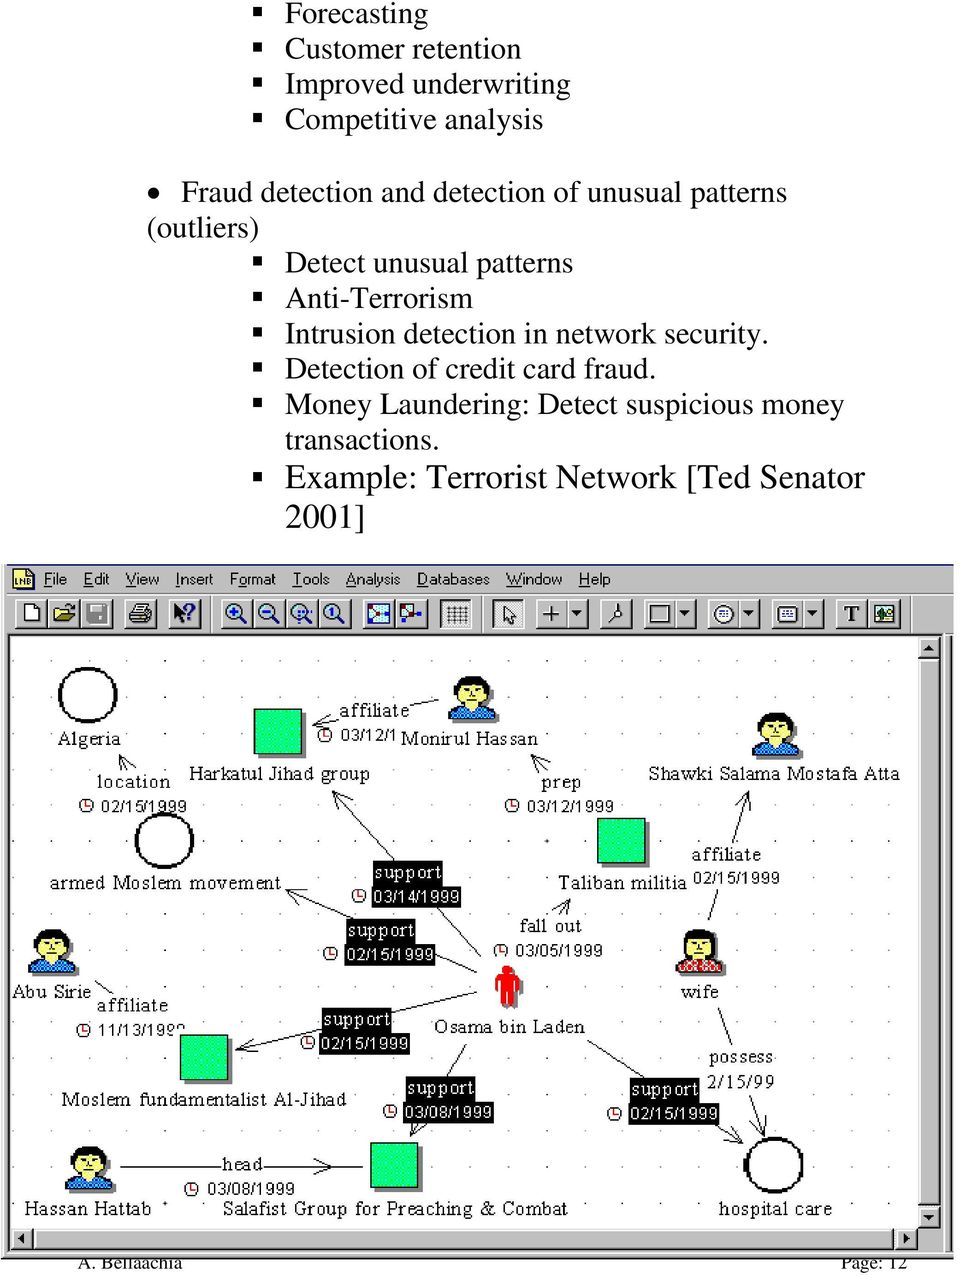 Intrusion detection in network security. Detection of credit card fraud.